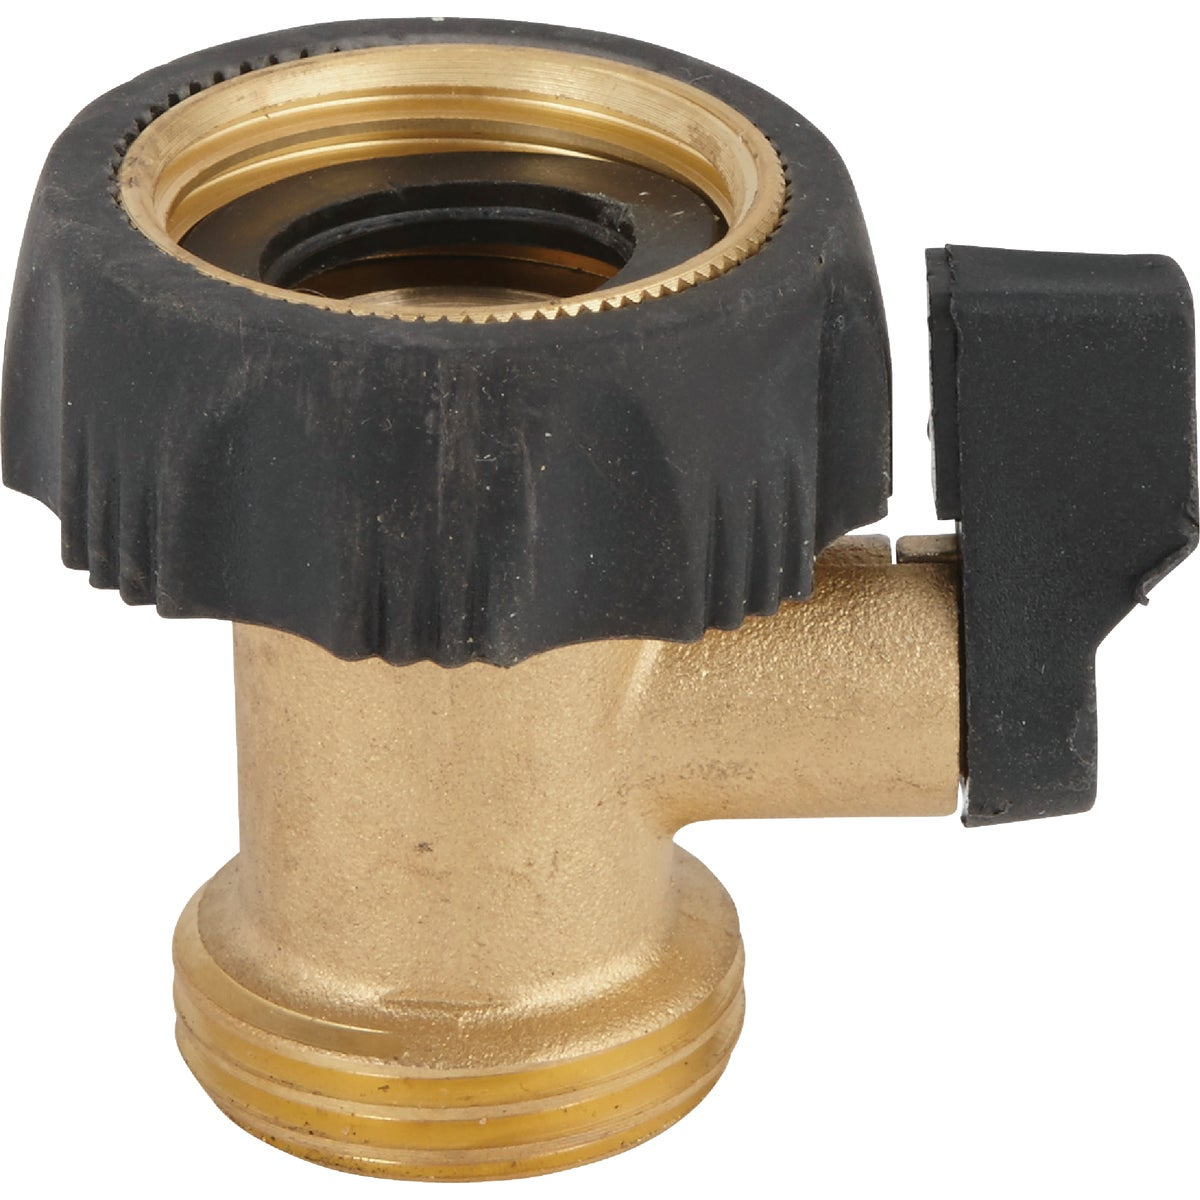 BRASS HOSE SHUT-OFF